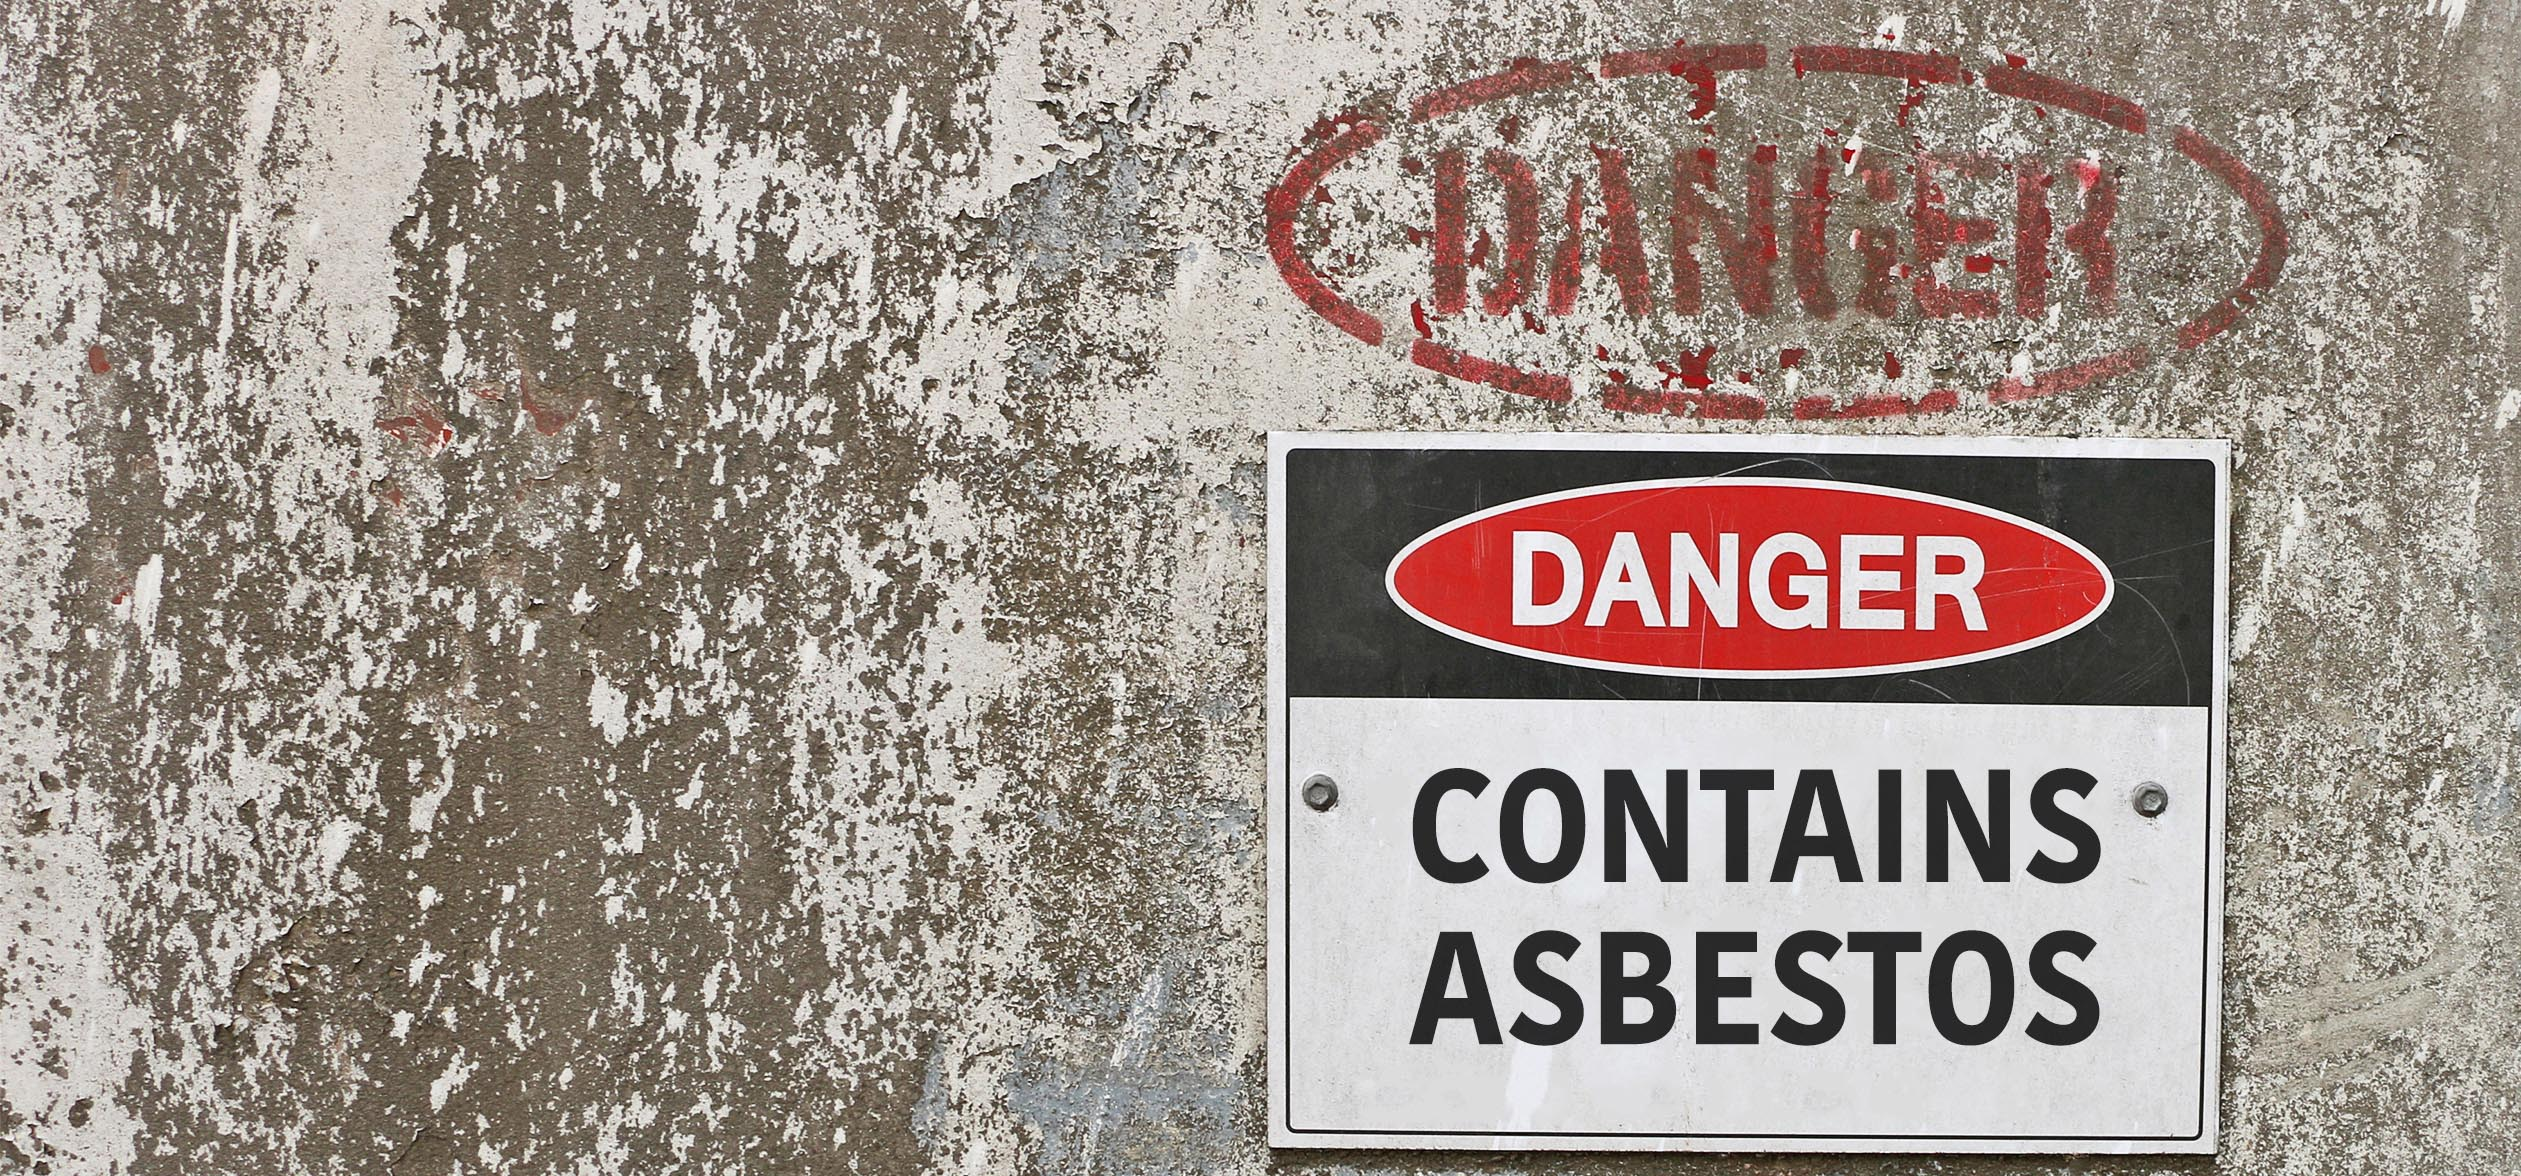 Danger Contains Asbestos Image